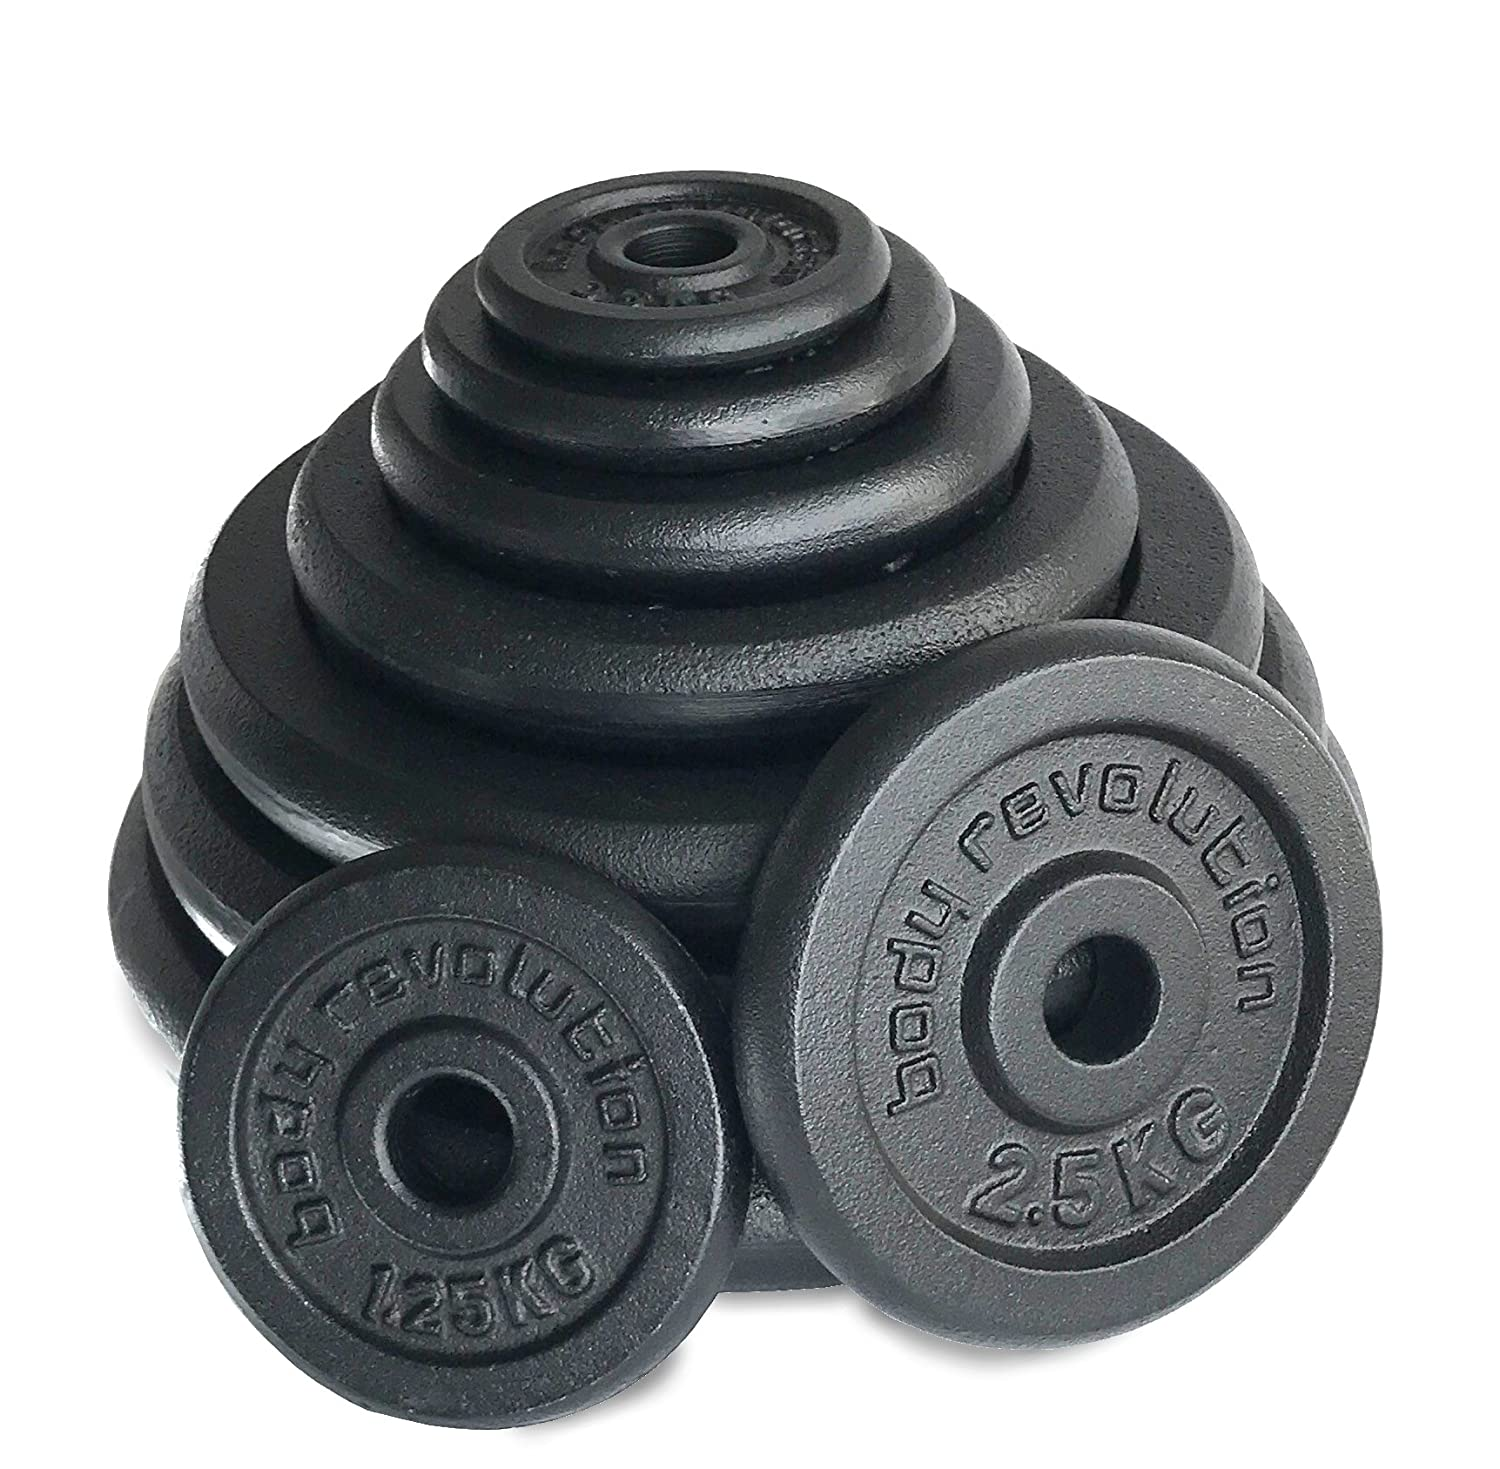 0.5kg Body Revolution Cast Iron Free Weight Plates 25kg Pairs Various Sizes